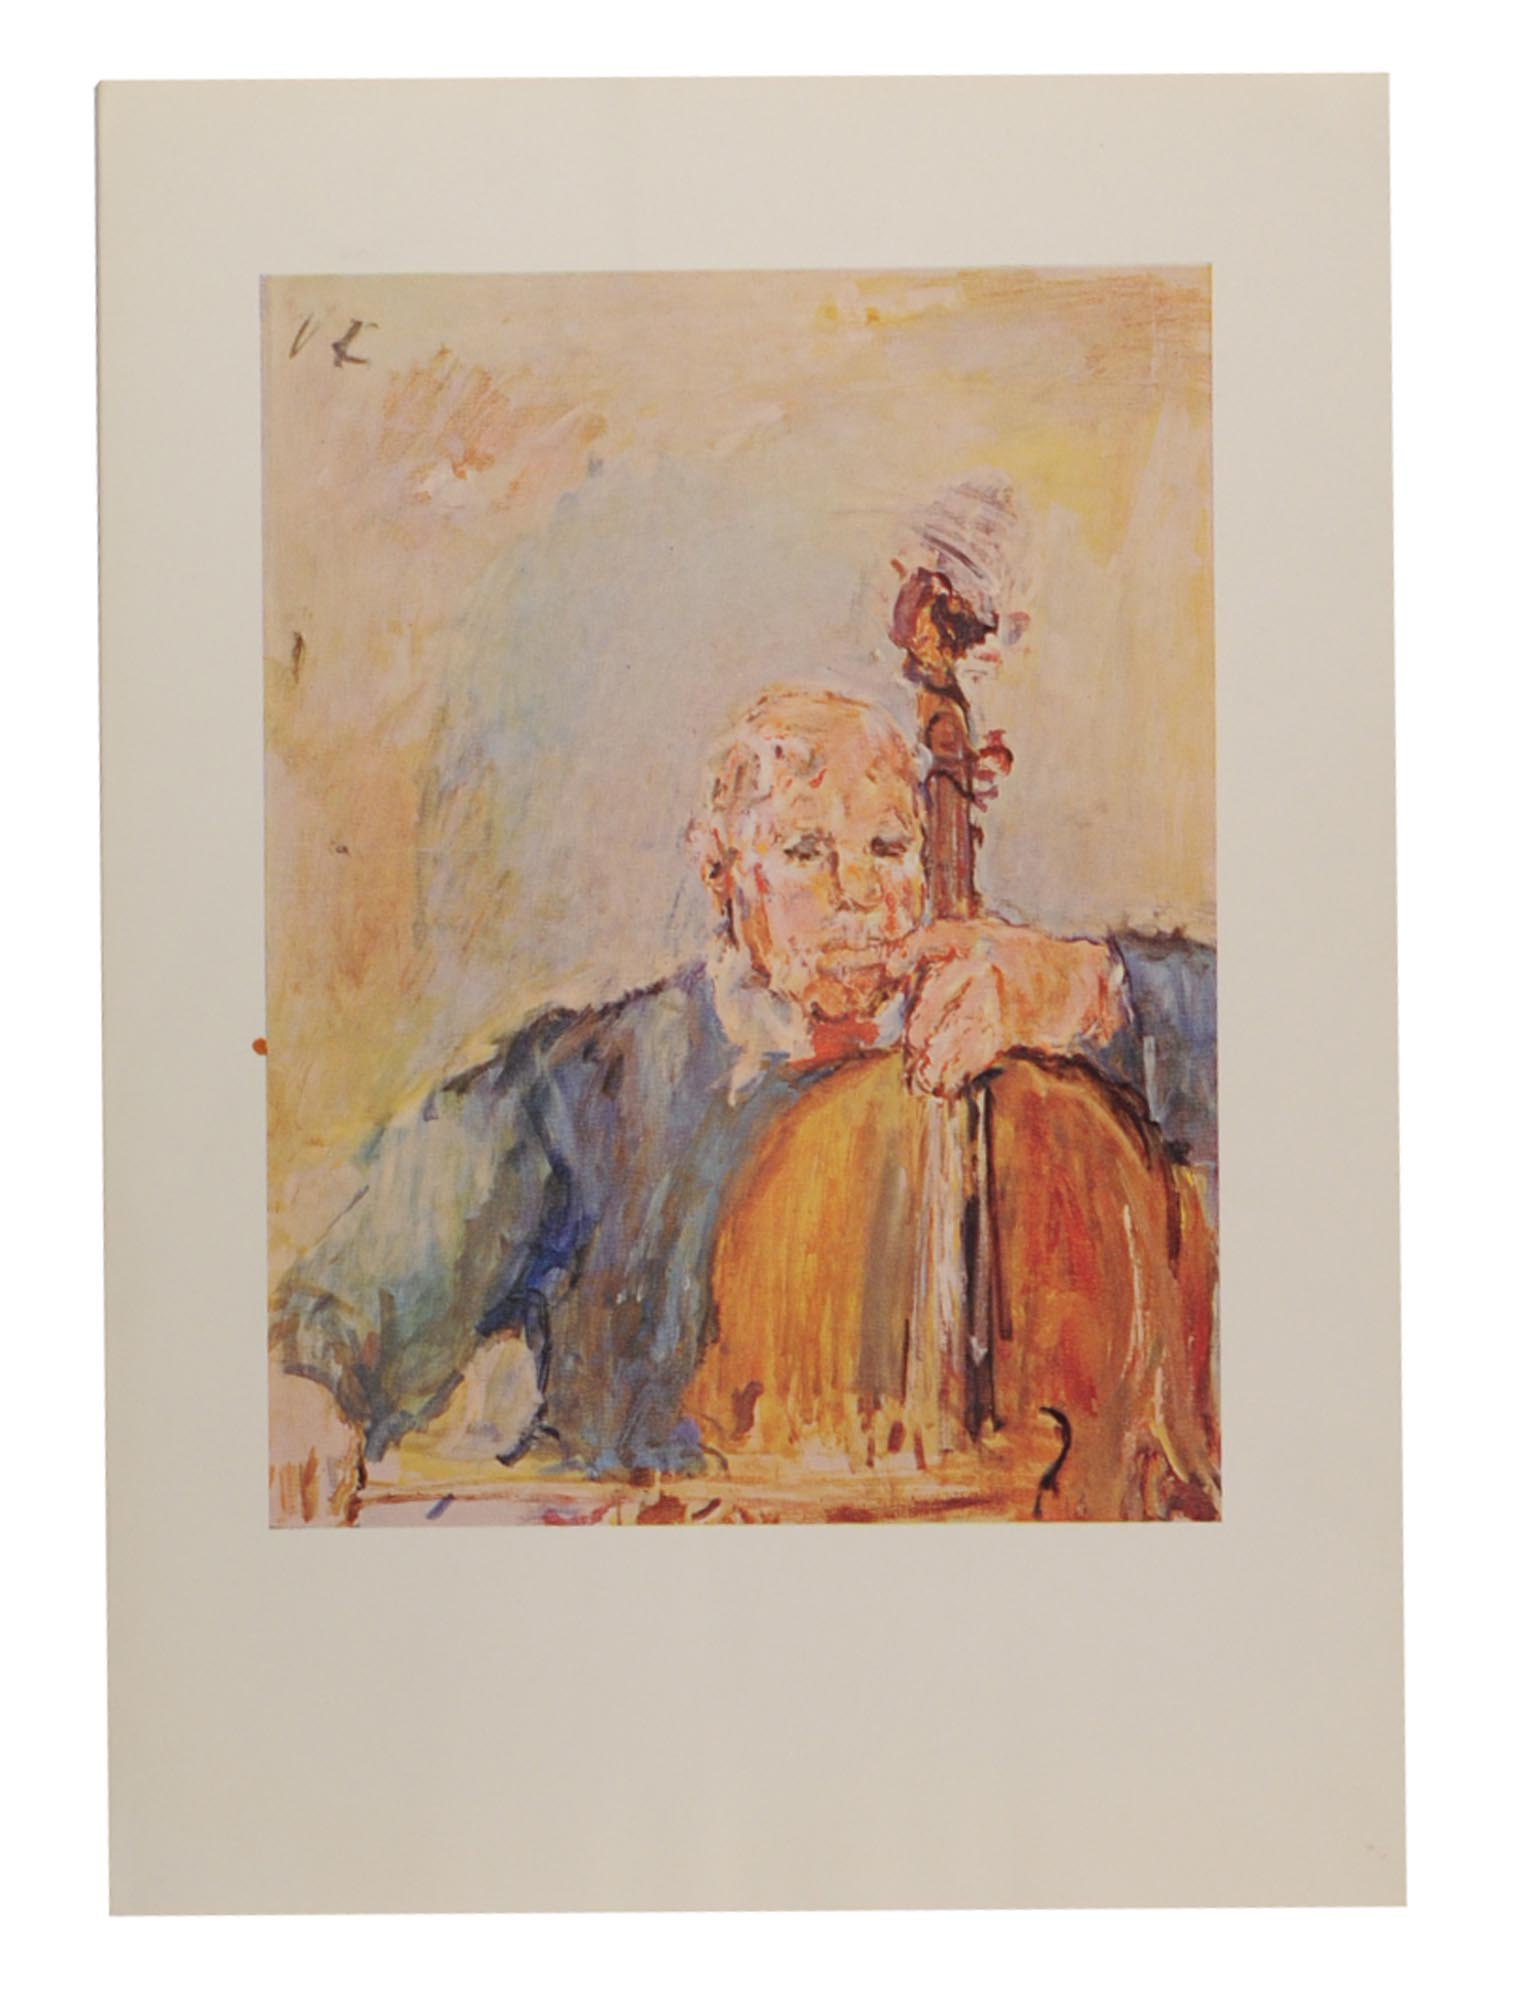 Four printed pictorial Christmas cards by, and from, Oskar Kokoschka ...